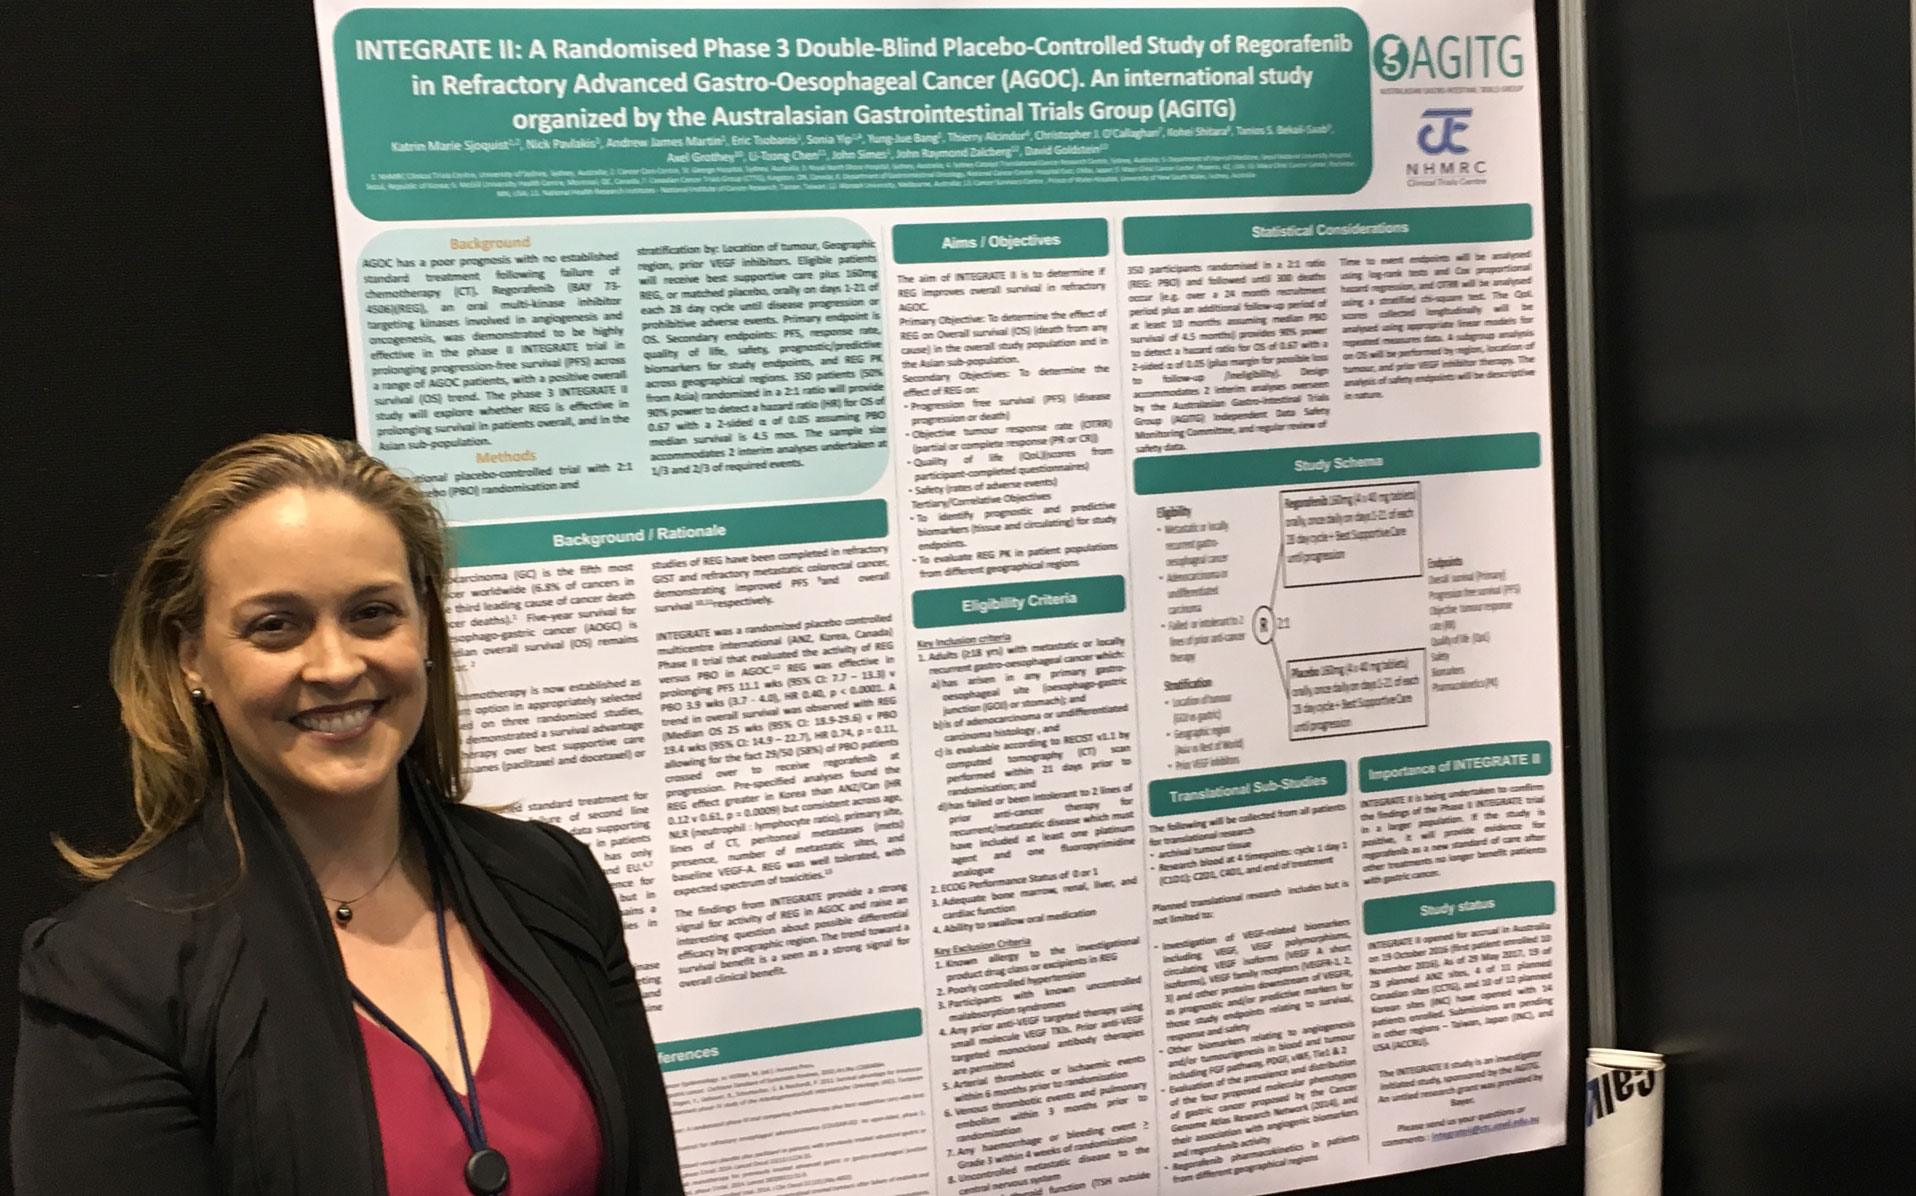 Dr Katrin Sjoquist AGO315OG GA3 poster regorafenib in refractory advanced gastro-oesophageal cancer - #CCTG proud Canadian partner #ASCO17